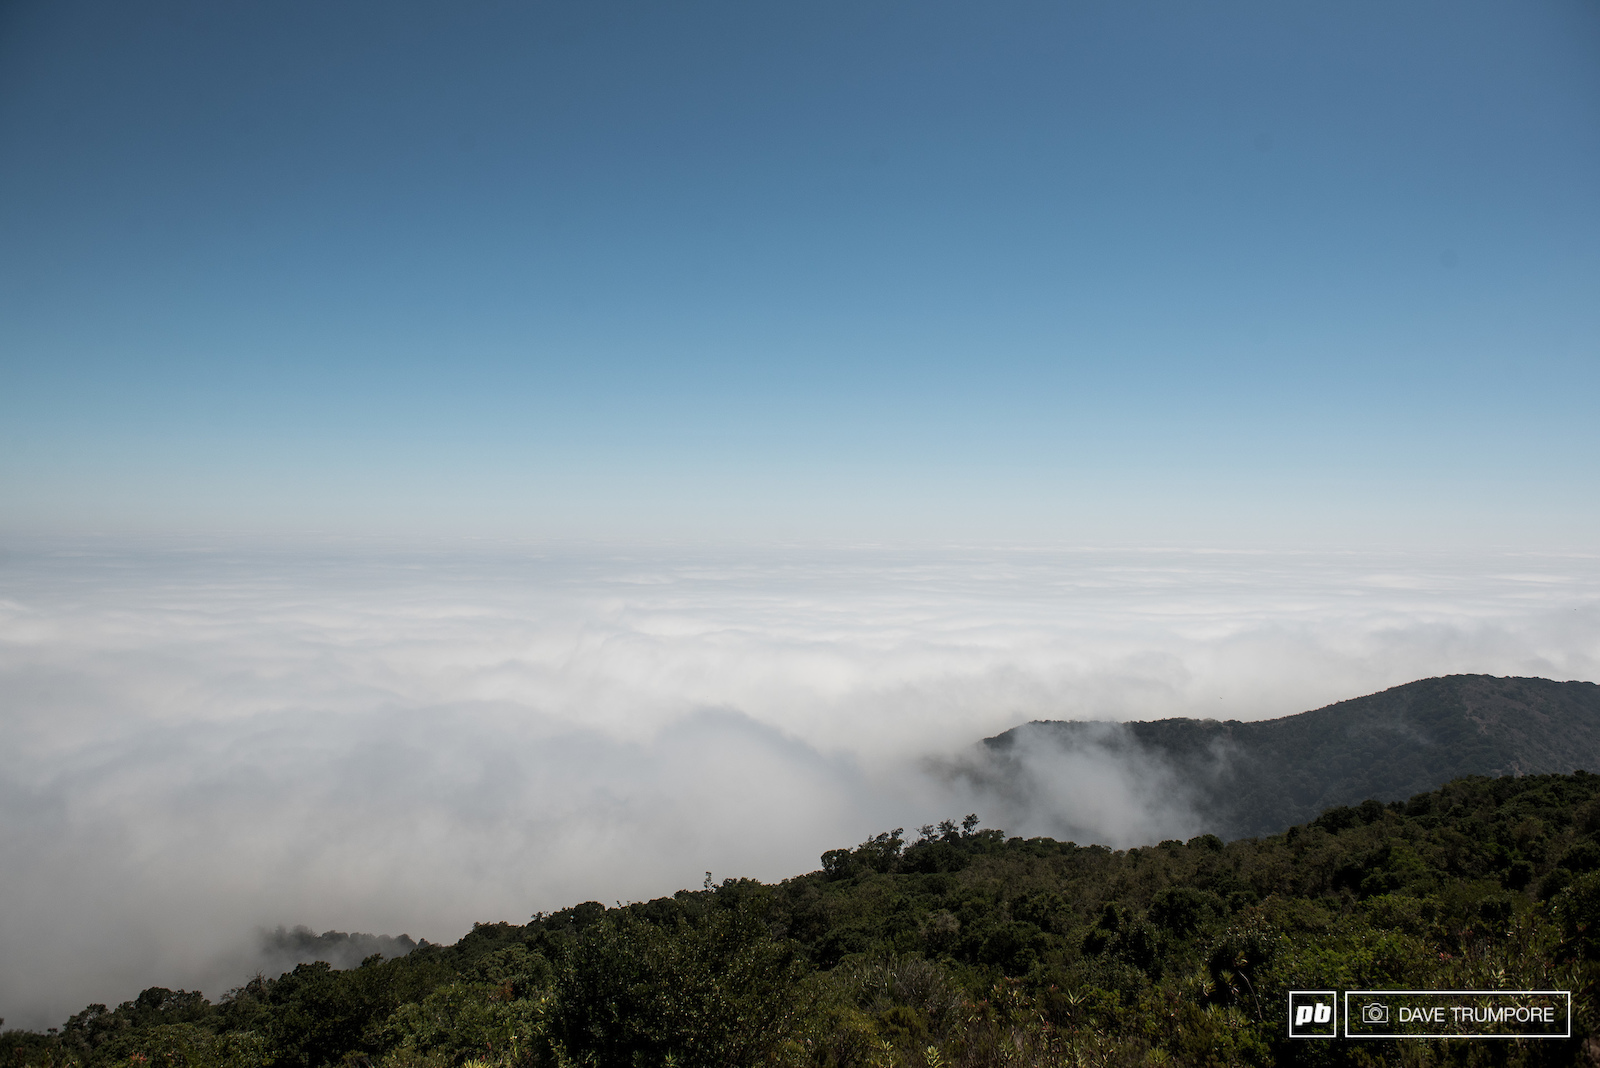 It was cold and foggy at the bottom of the mountain and super hot and humid up top t start the final stage of the week. Usually there would be a beautiful view of the Pacific Ocean greeting racers as they reached this point in the race but on this day it was not to be.